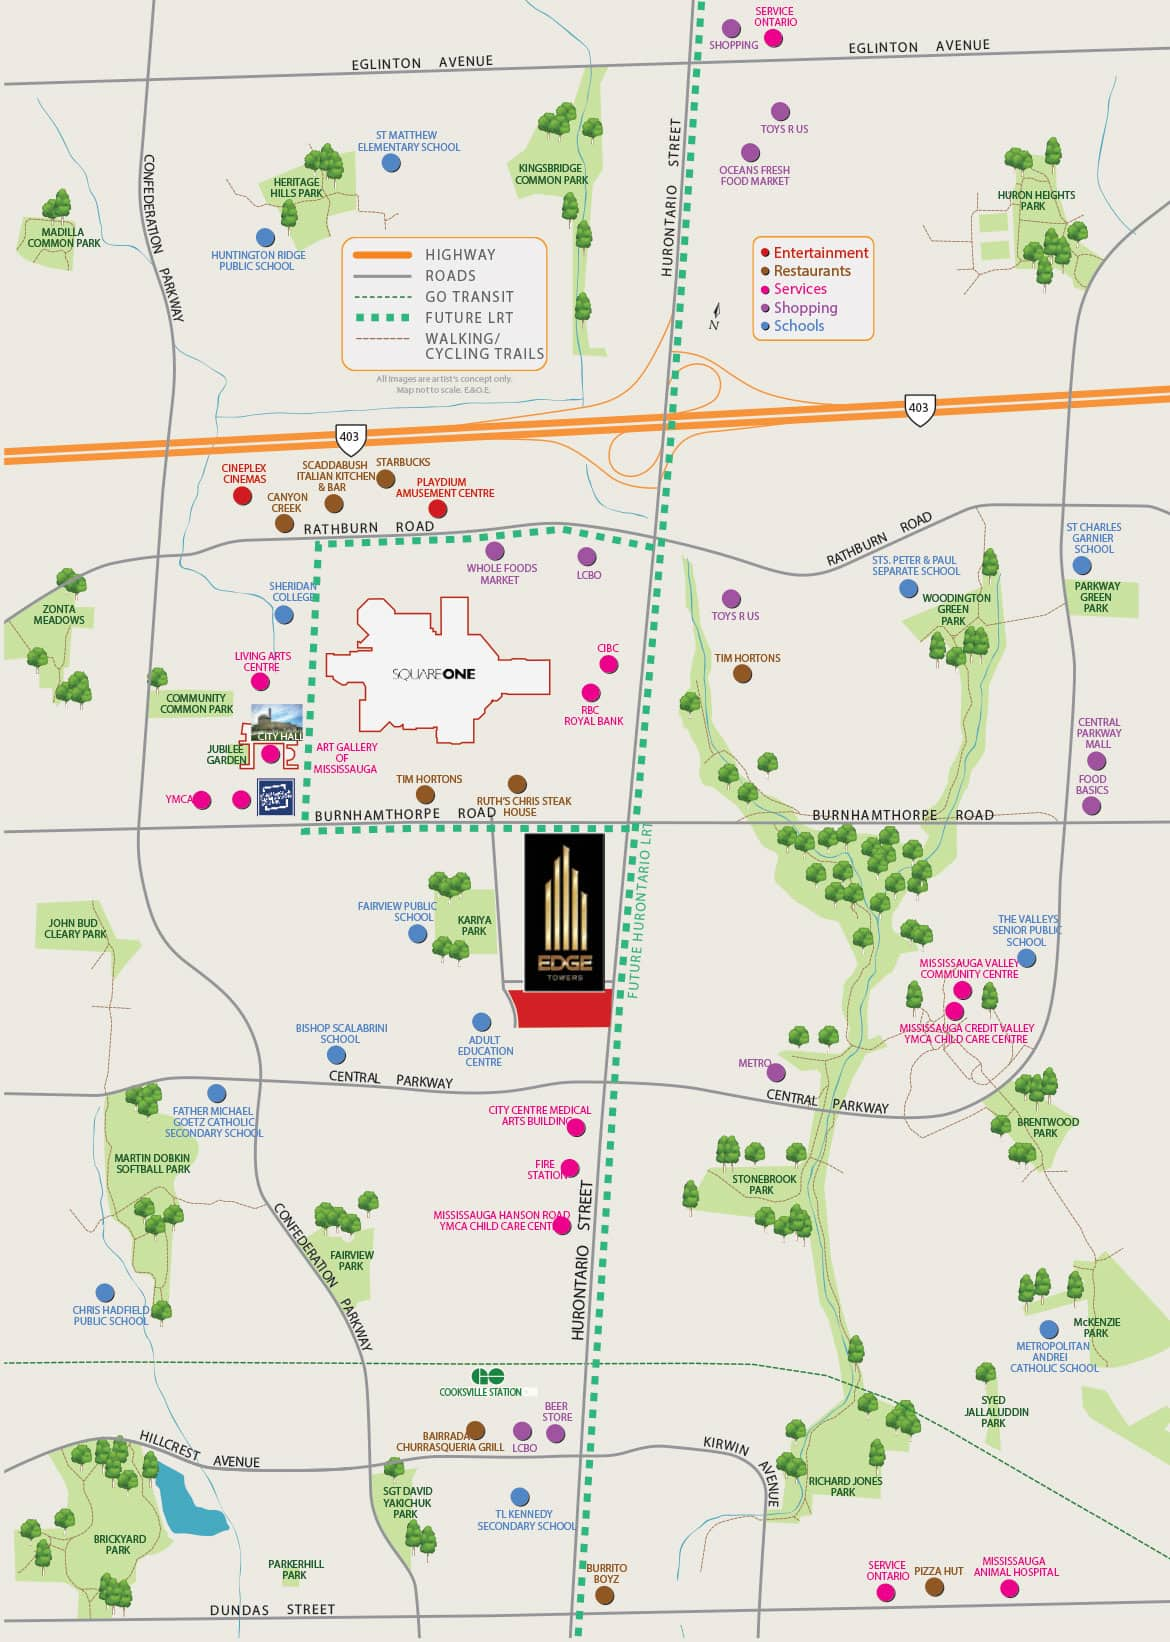 cooksville go Edge Tower 2 Condos edge towers 2 mississauga siteplan surrounding area square one